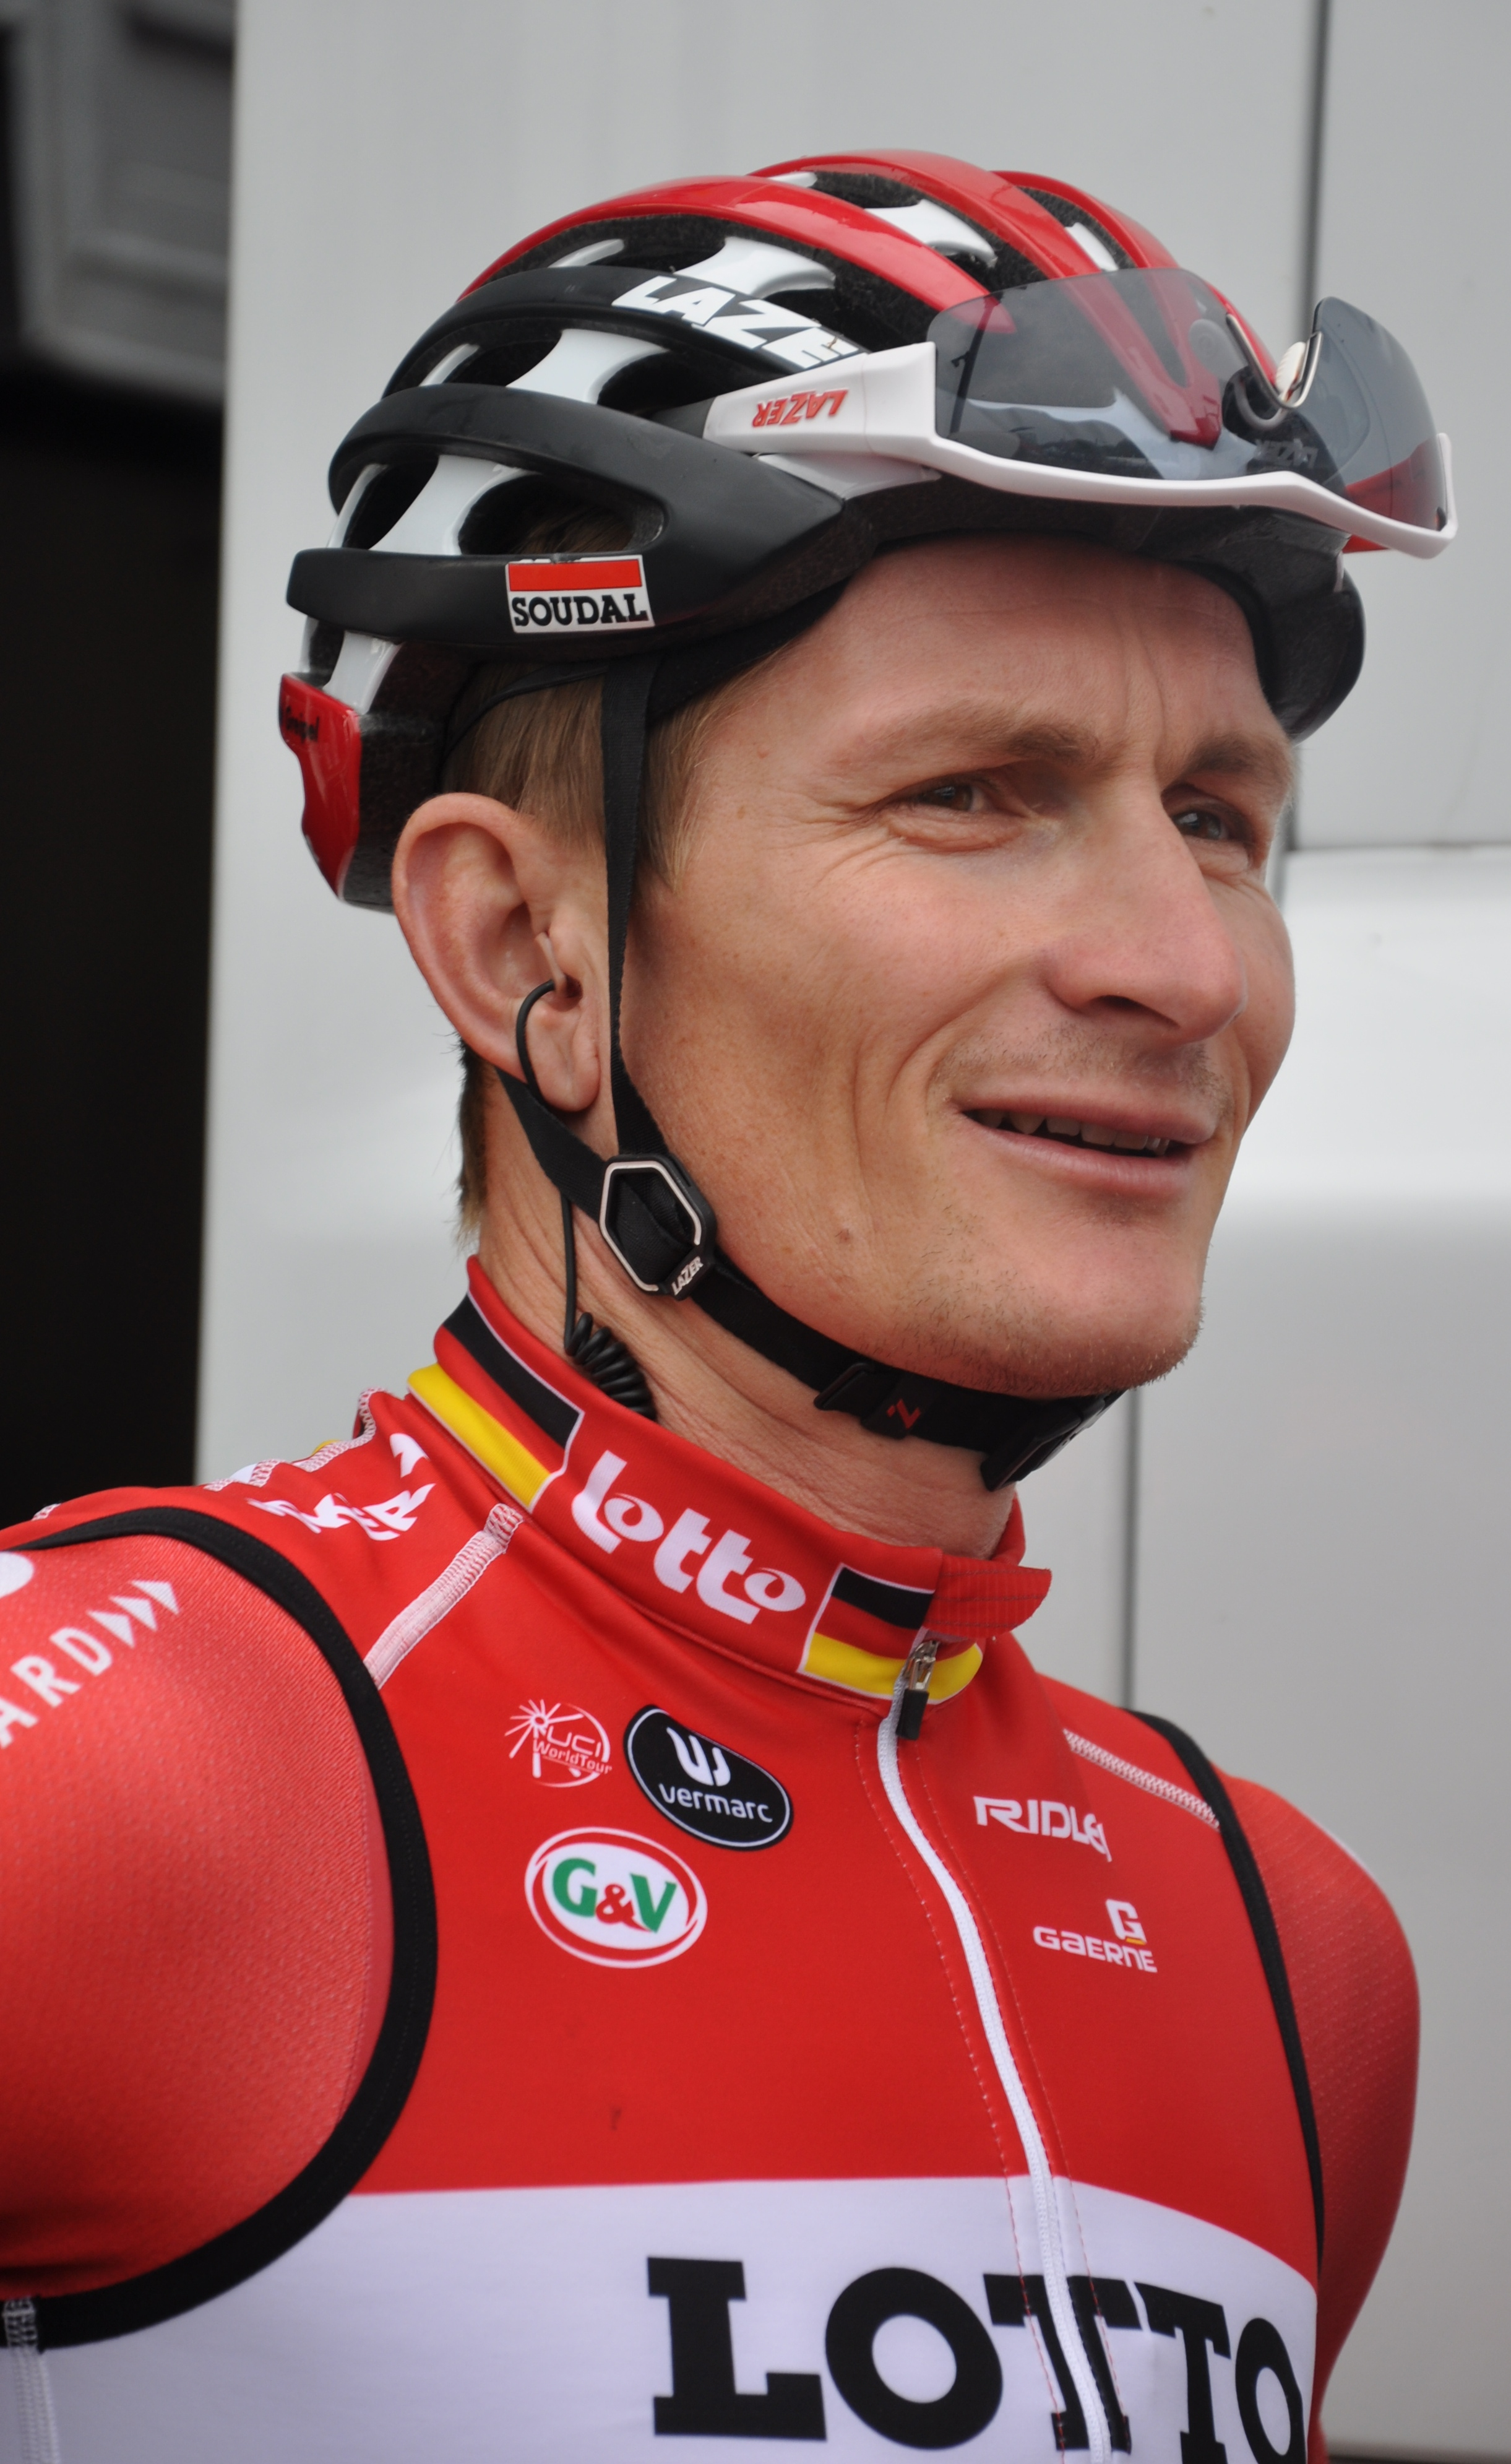 The 36-year old son of father (?) and mother(?) André Greipel in 2018 photo. André Greipel earned a  million dollar salary - leaving the net worth at 0.2 million in 2018